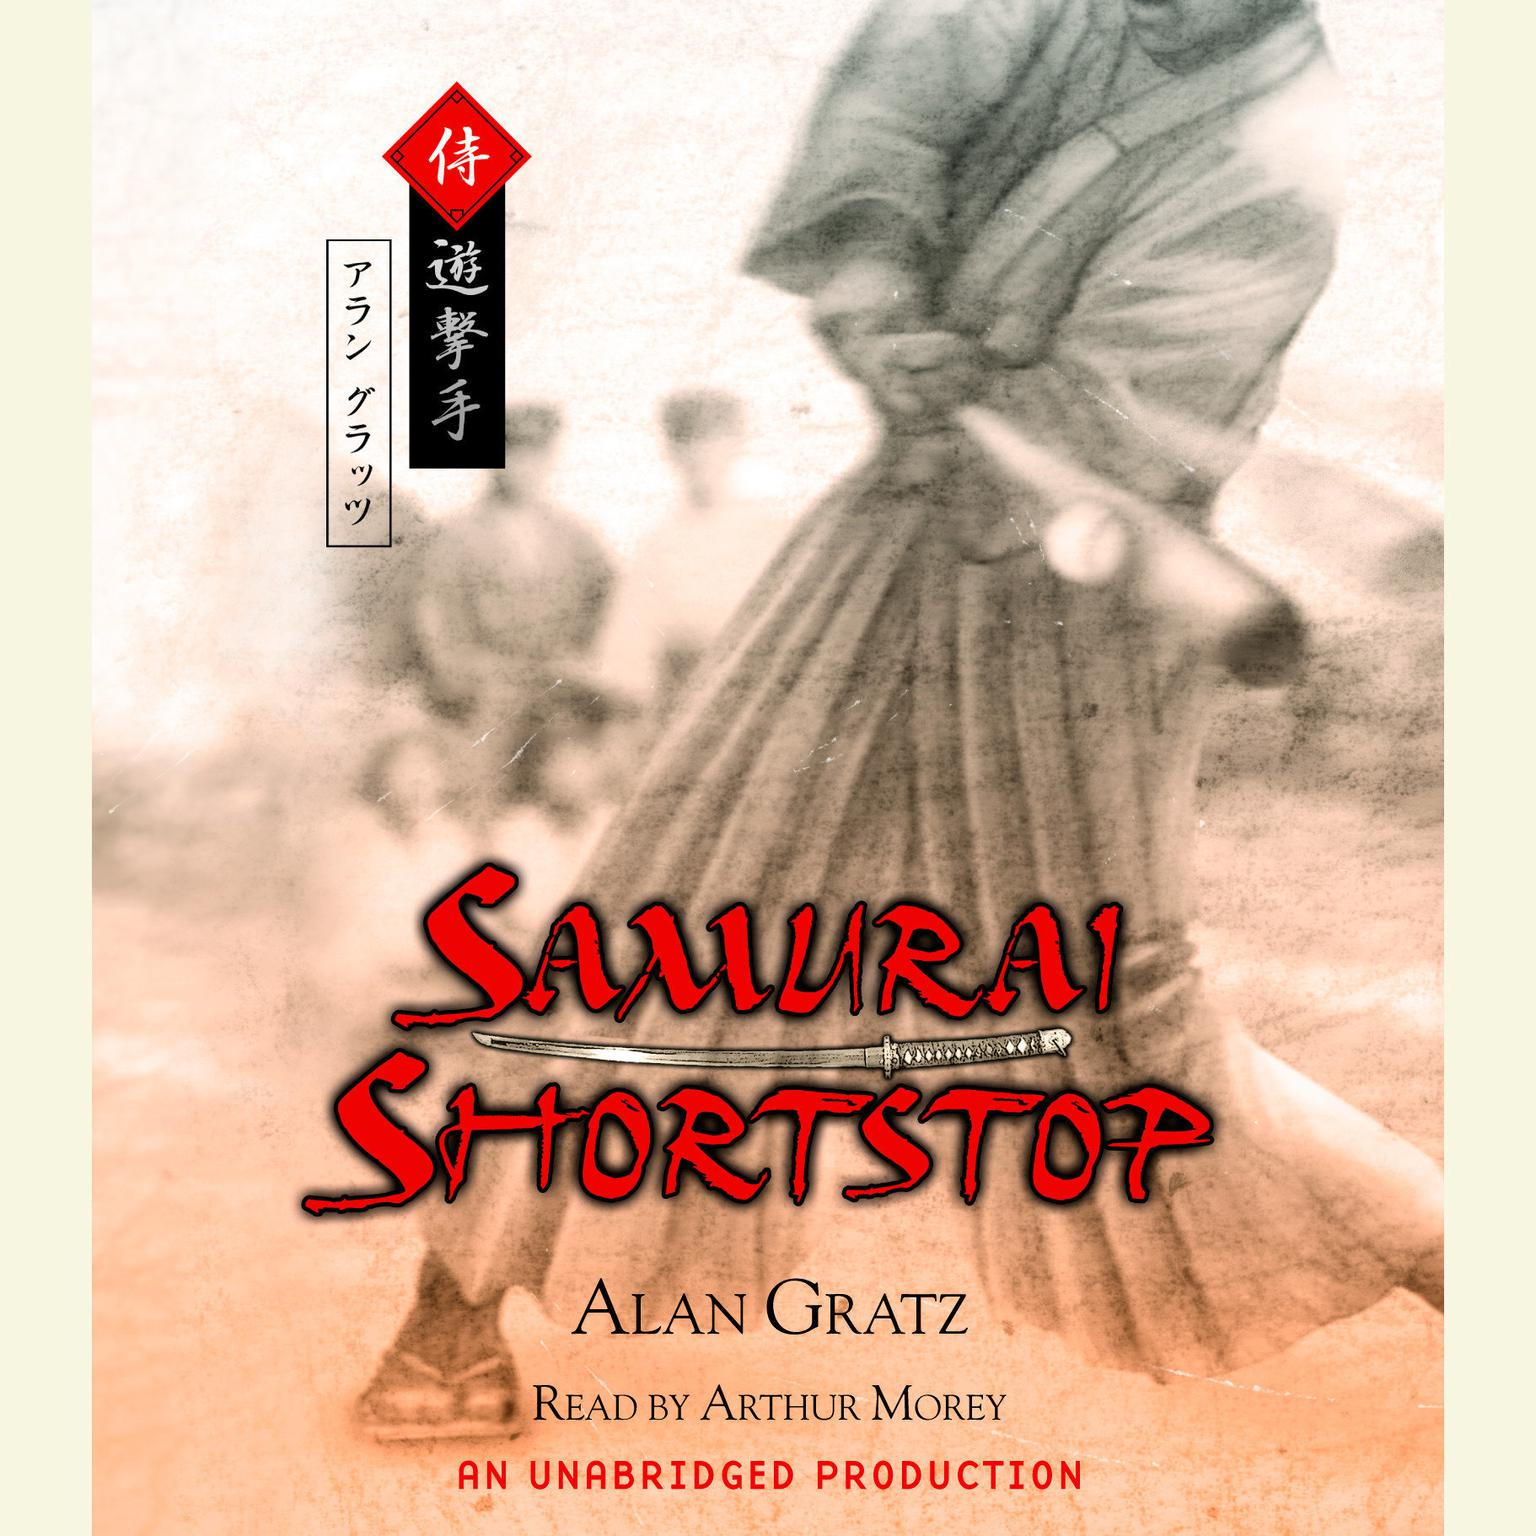 Printable Samurai Shortstop Audiobook Cover Art